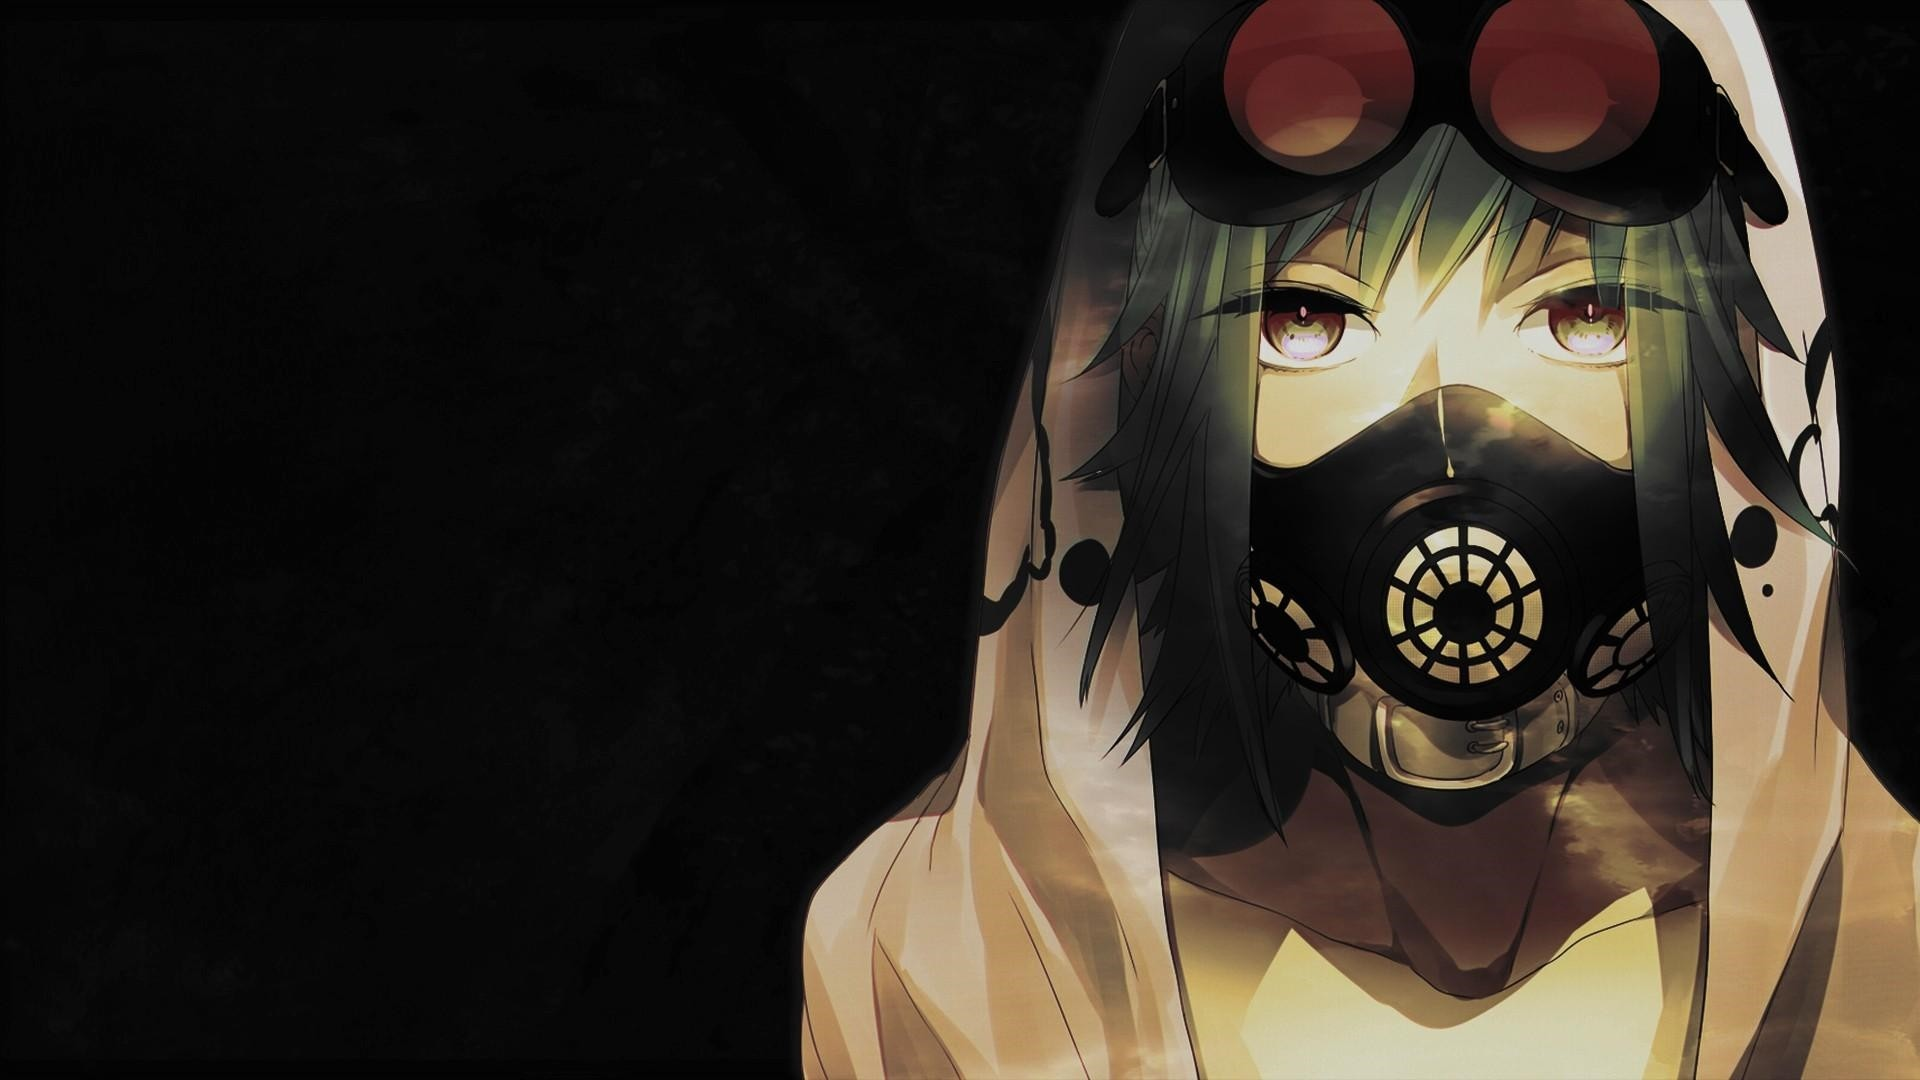 Anime Girl With Gas Mask PC Wallpaper